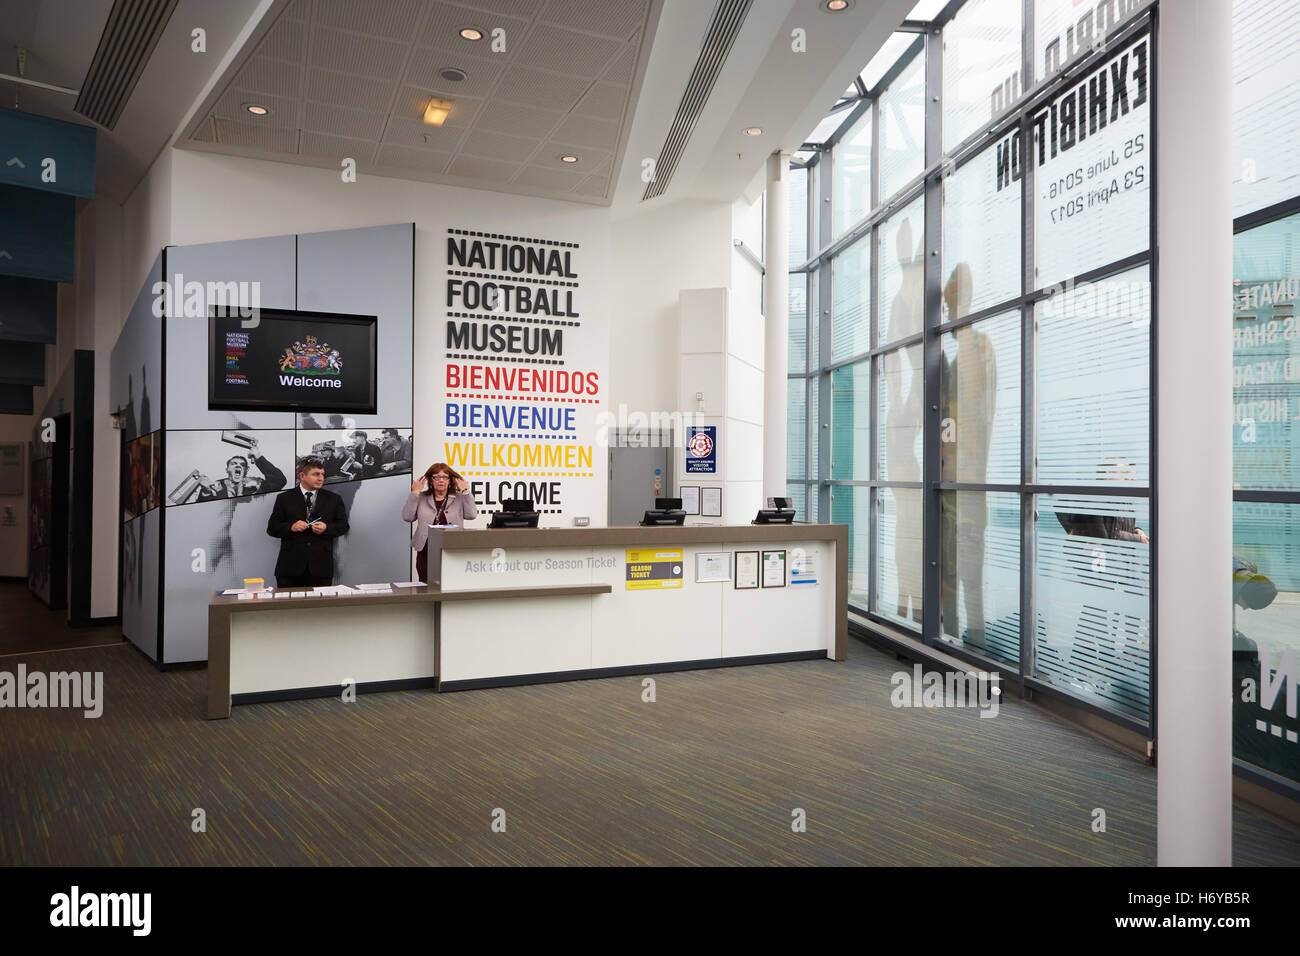 Urbis, National Football Museum in Manchester - Stock Image